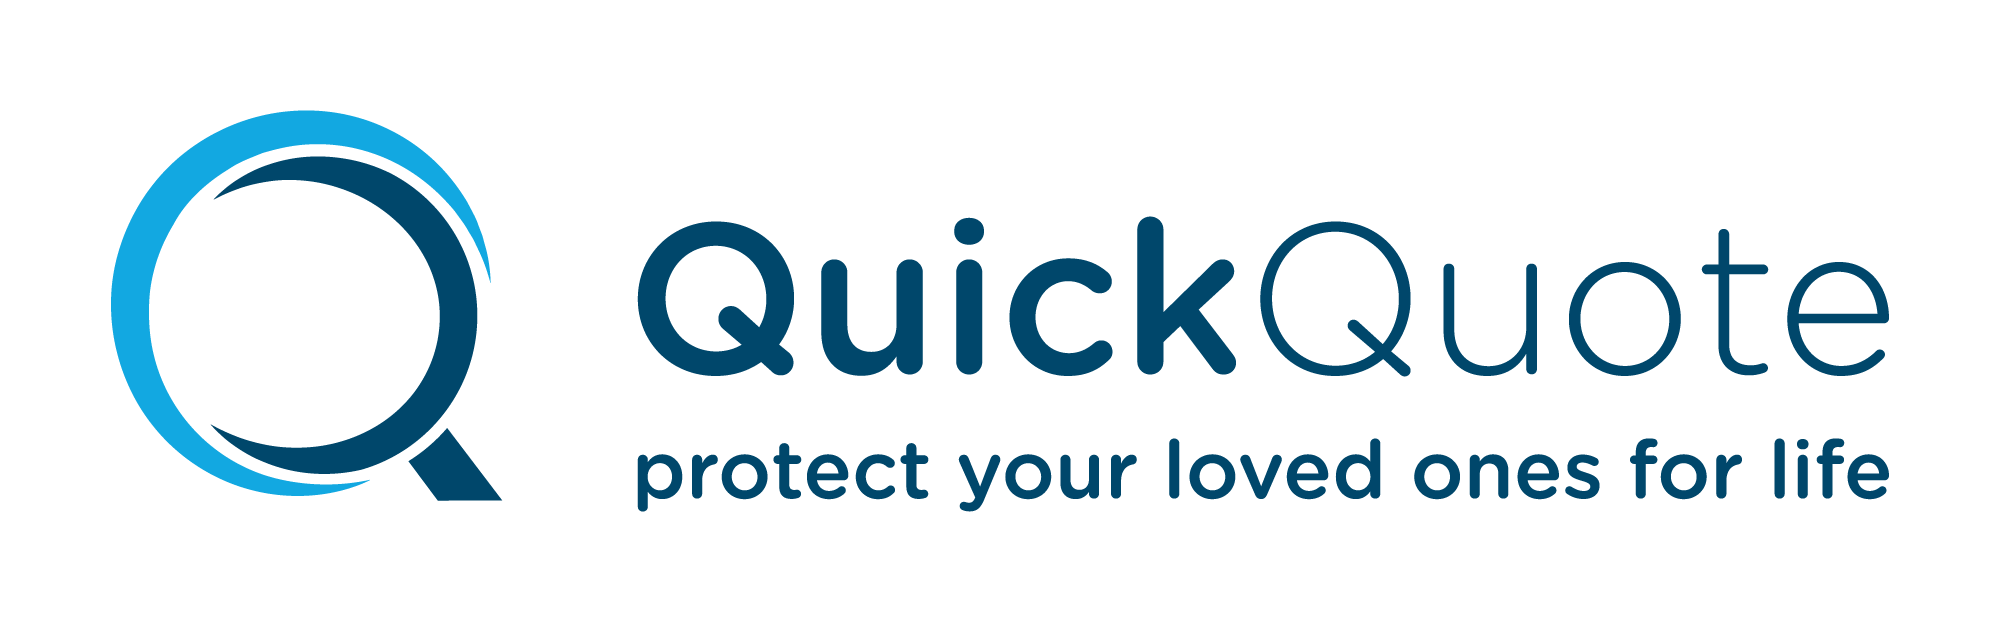 Select A Quote Life Insurance Term Life Insurance Quotes  Quickquote